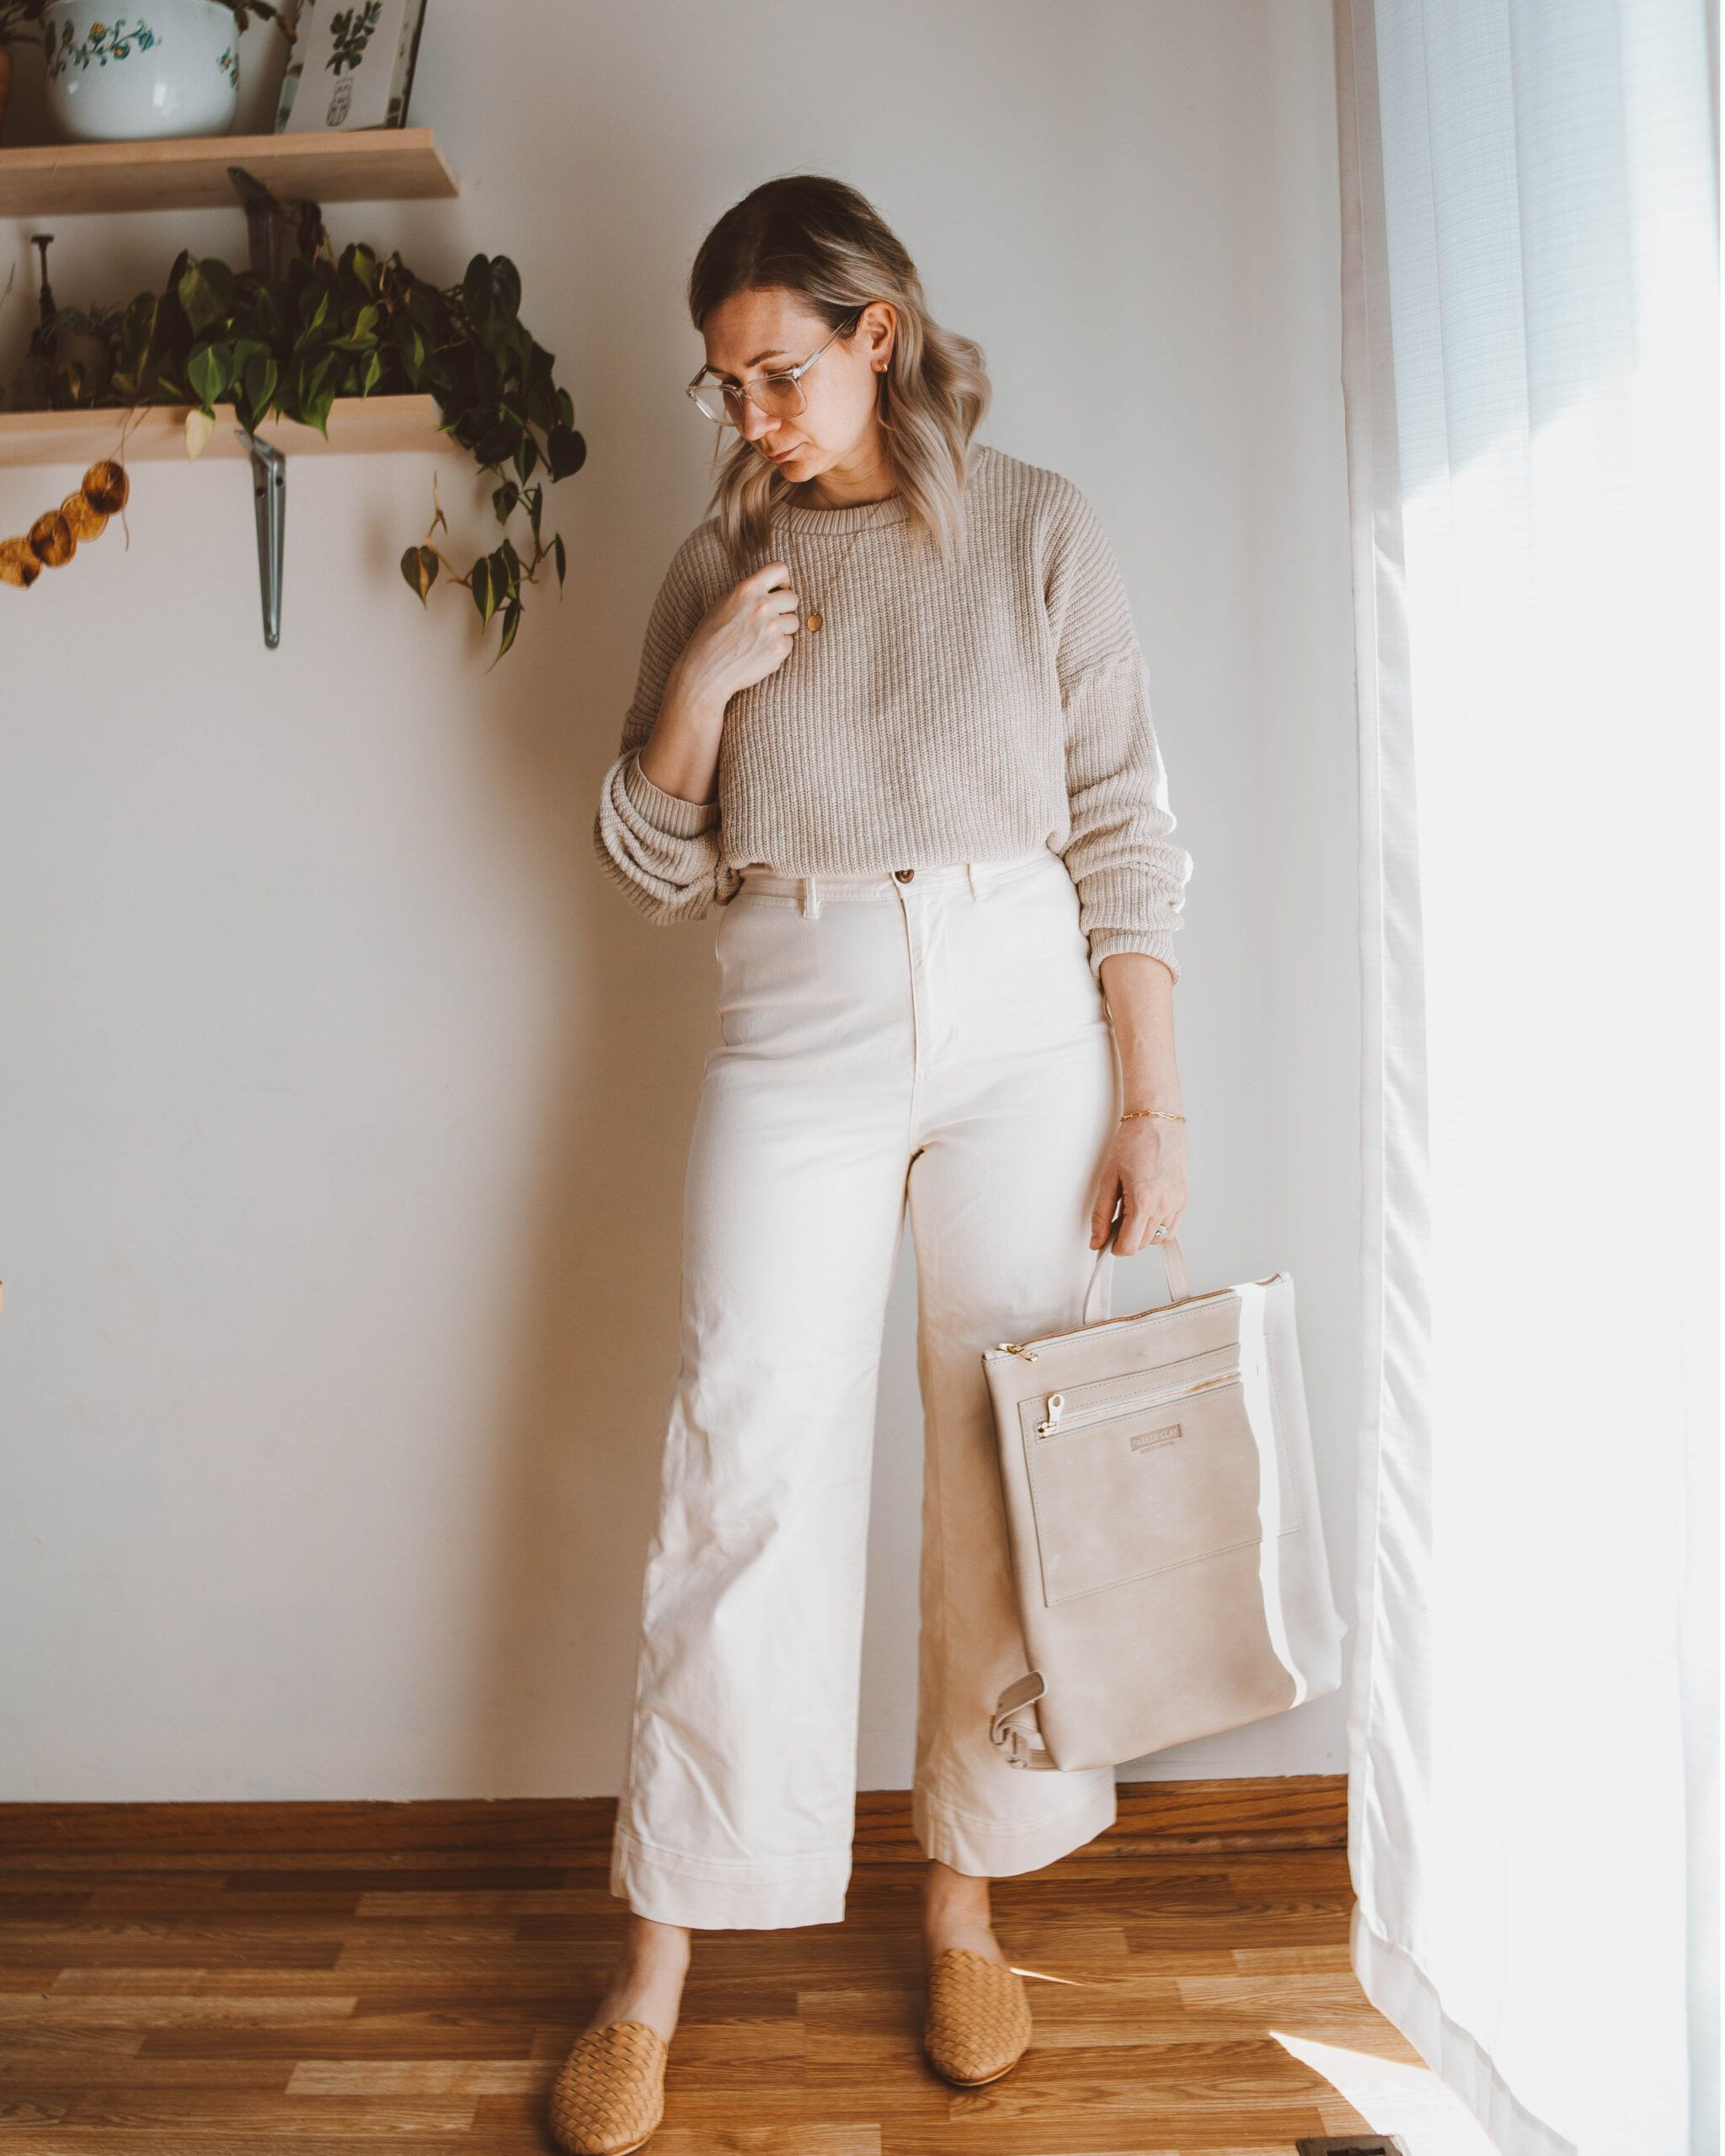 Spring Outfits I wish I was Wearing: Styling Neutral Outfits | Truncation